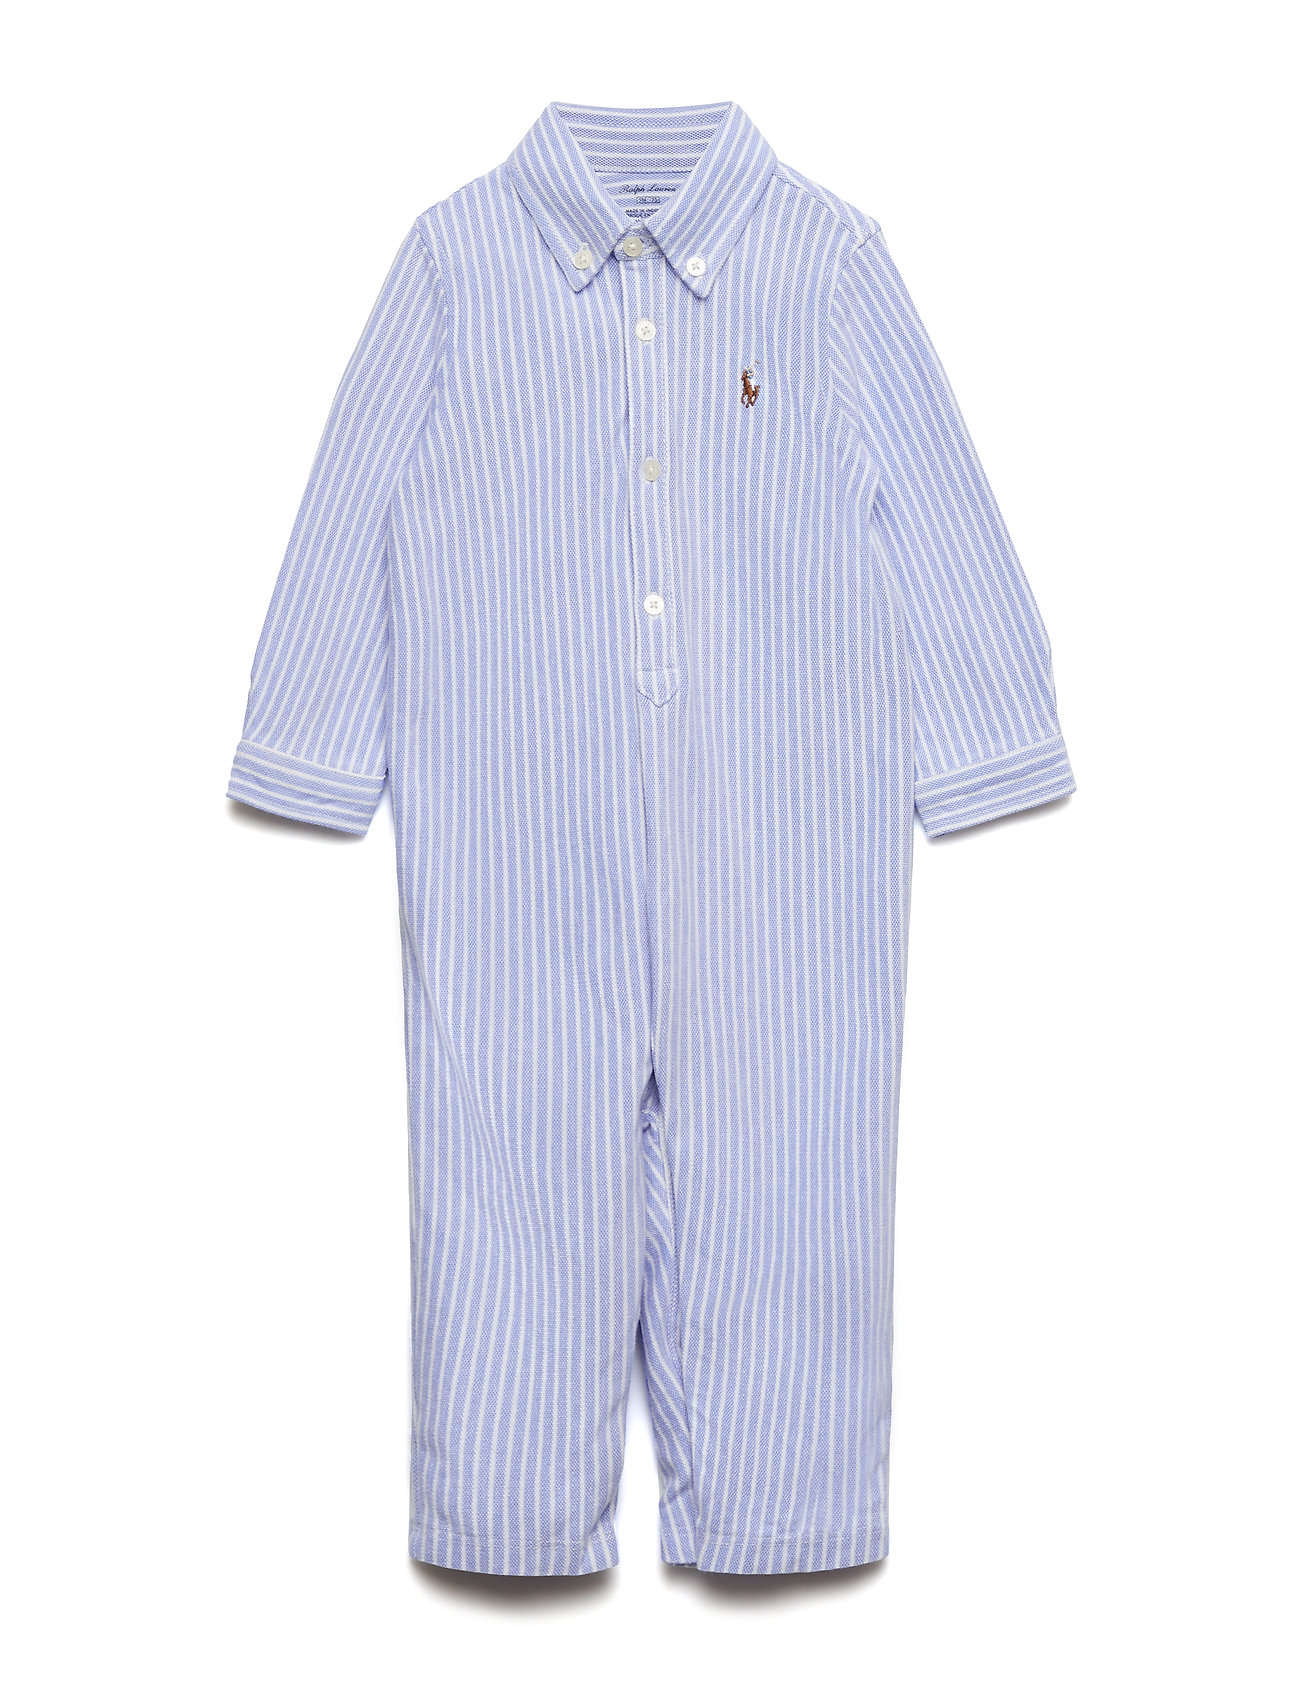 Ralph Lauren Baby Cotton Oxford Mesh Coverall - HARBOR ISLAND BLU